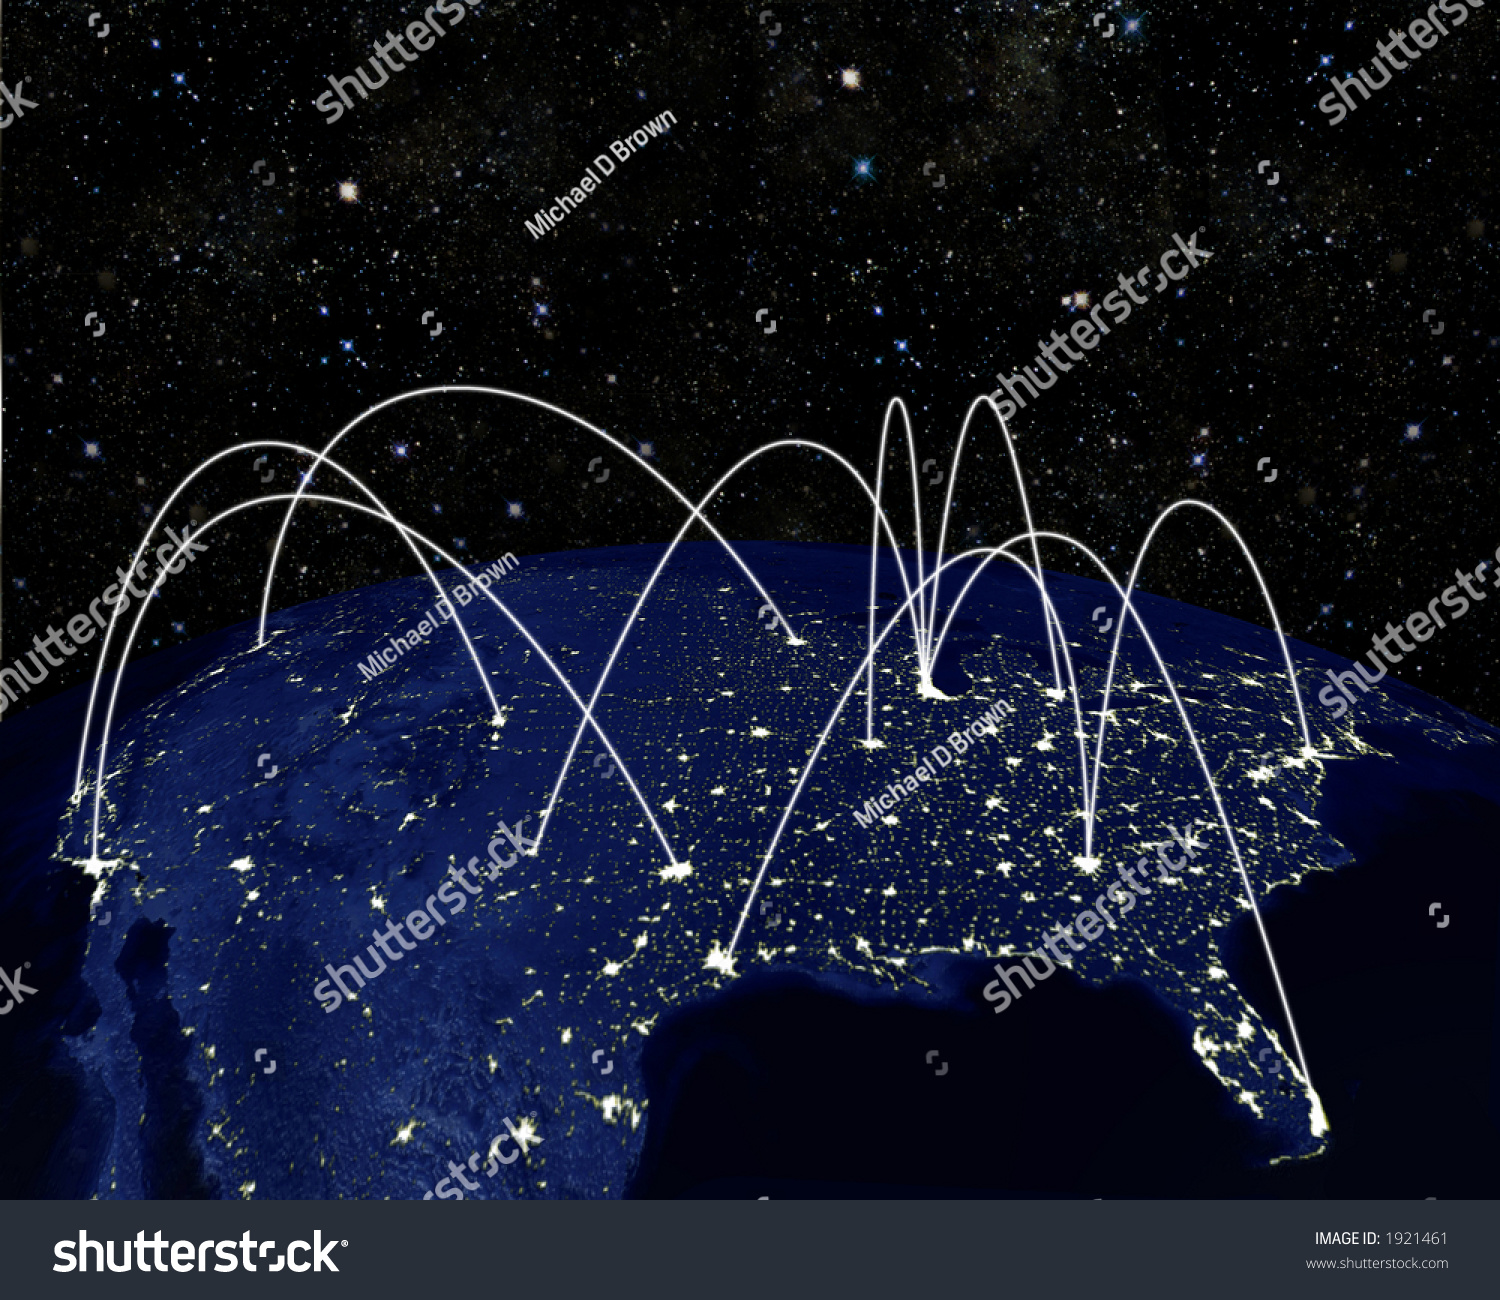 3d Render Of Earth - North America - At Night, With Inter-City Comm-Links, Flight Paths, Business Connections, Etc. Stock Photo 1921461 : Shutterstock